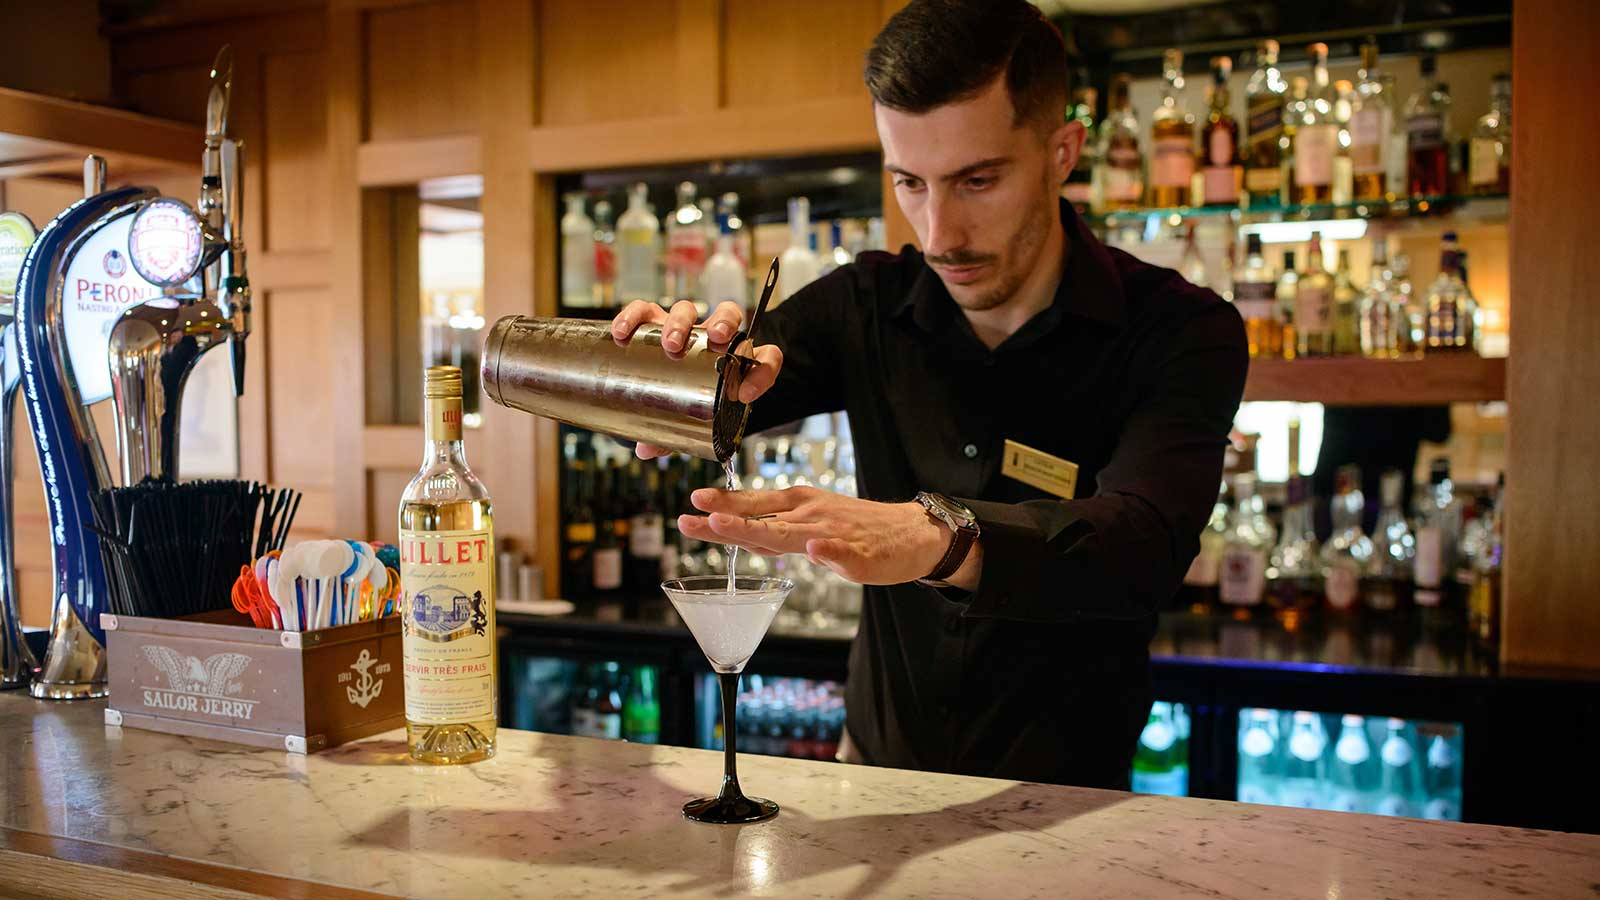 Serving a Martini on World Cocktail Day